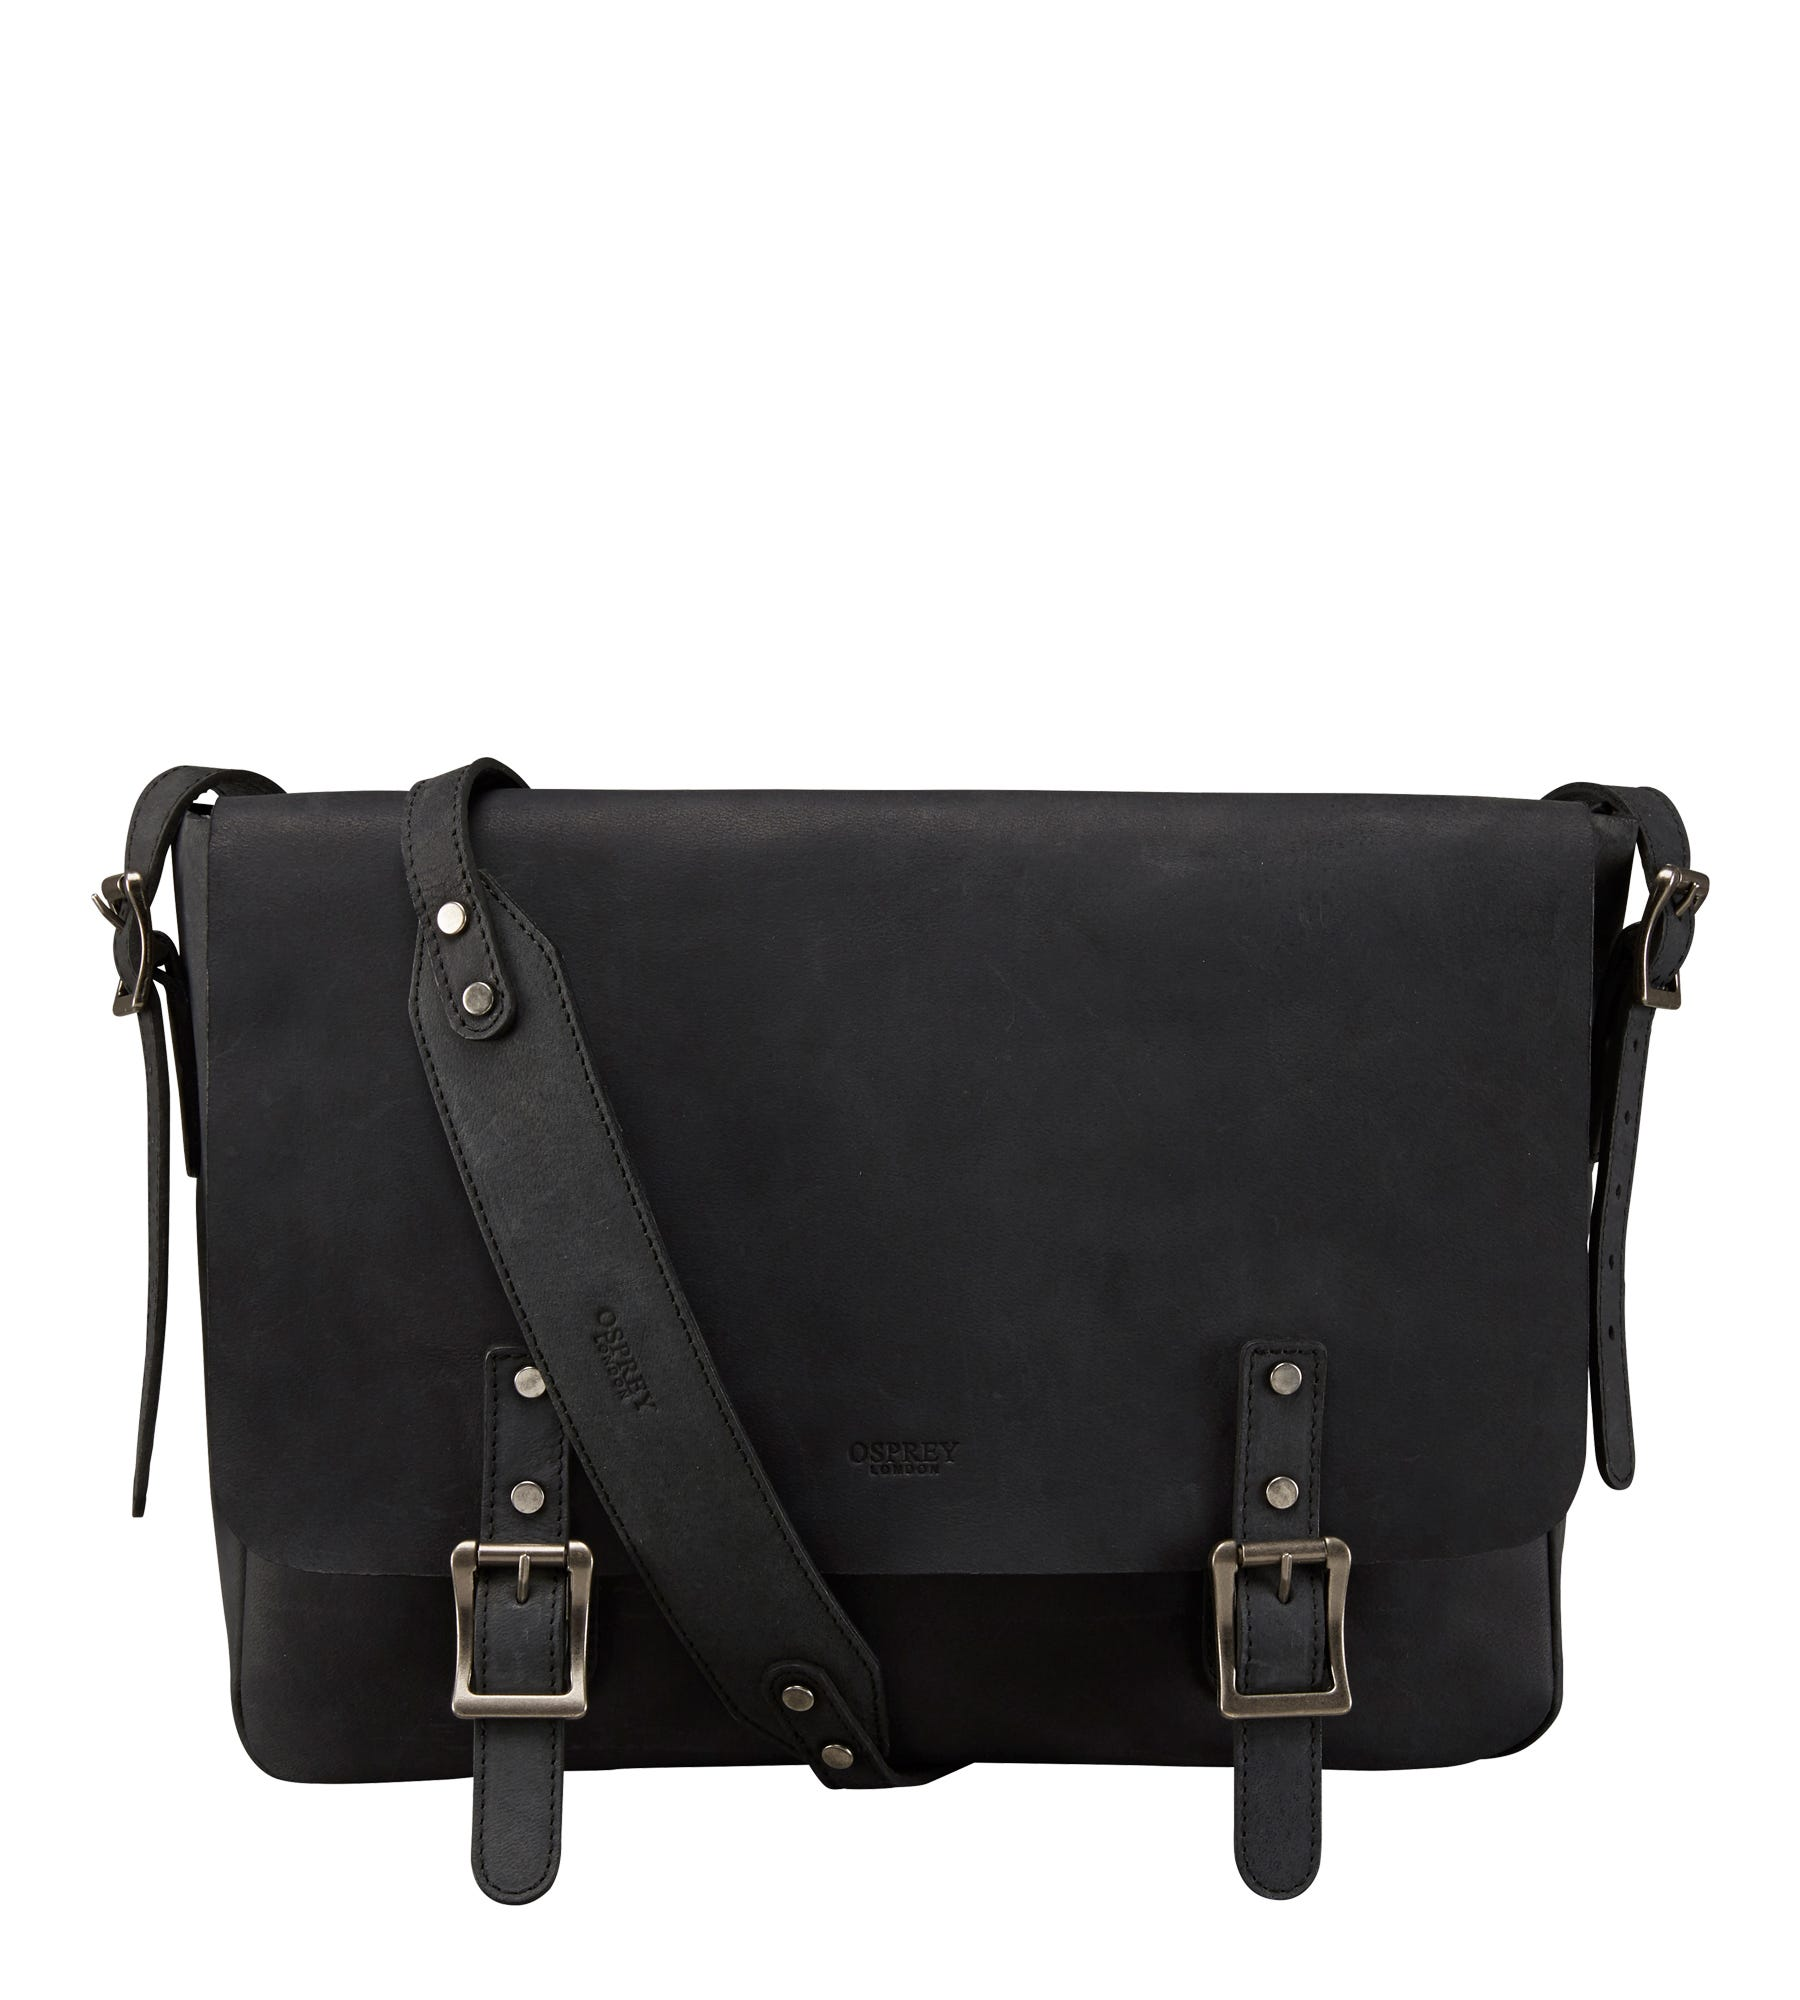 An image of The Large Clayton Leather Satchel